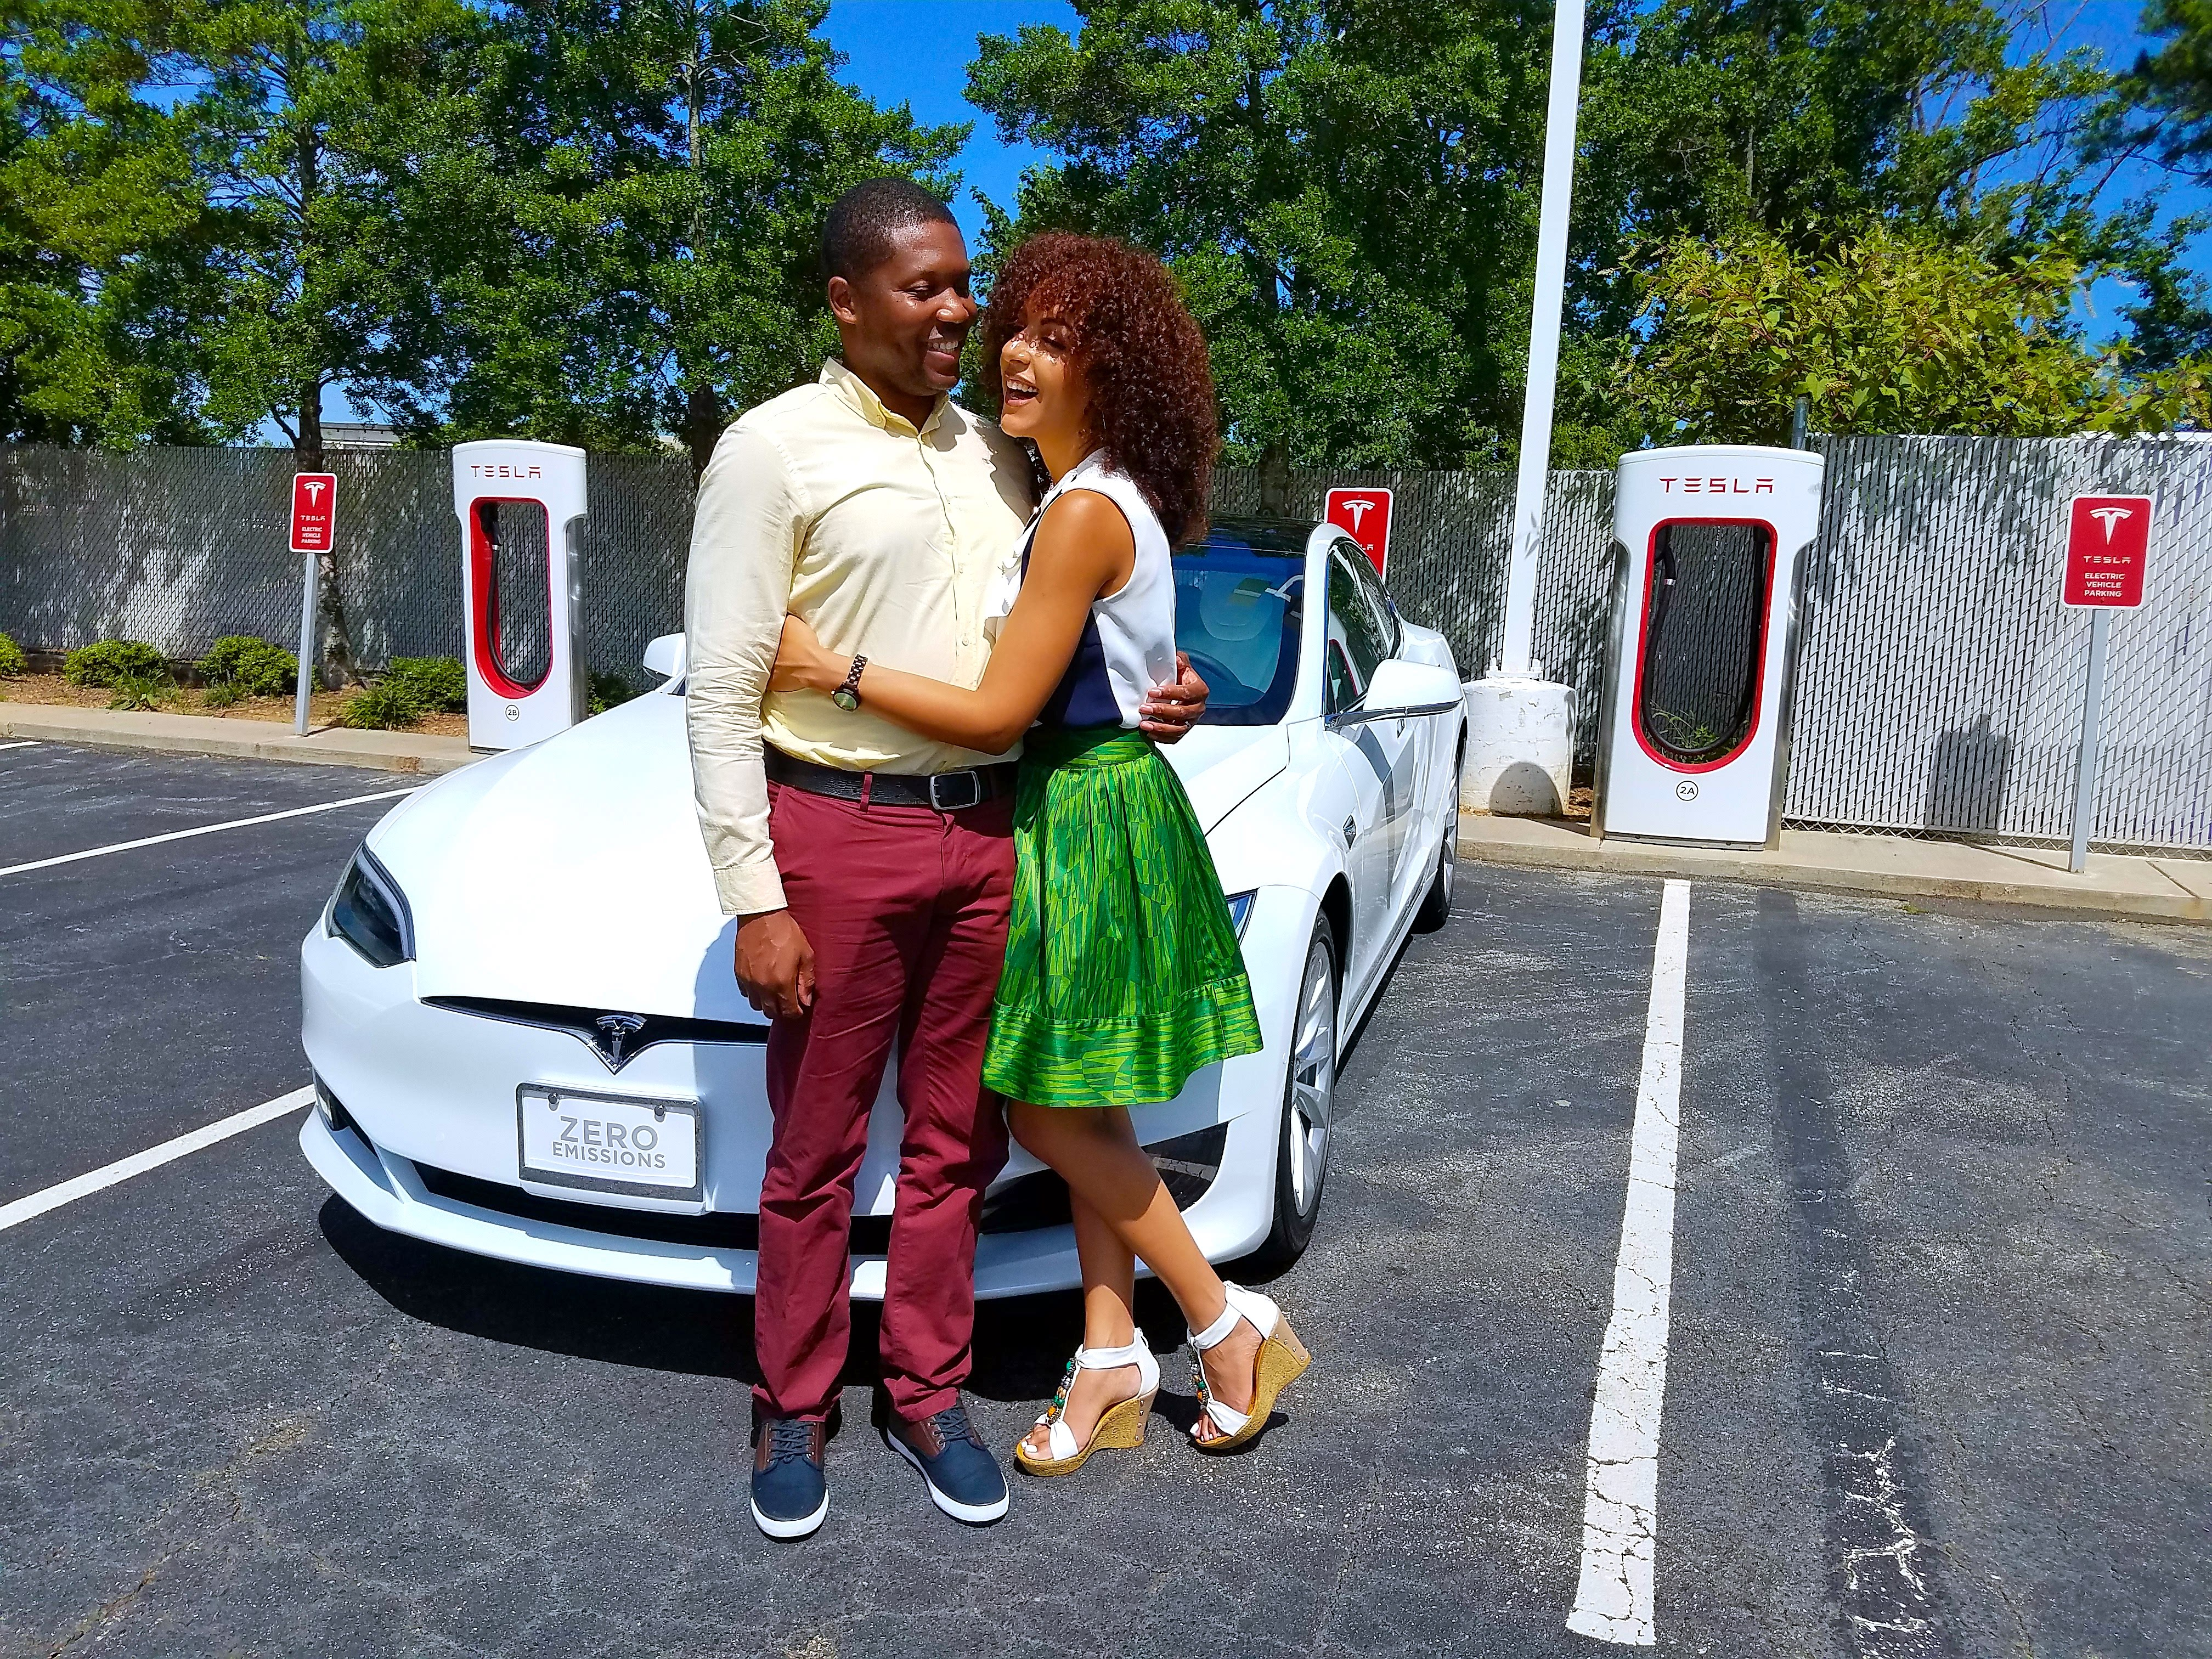 We Bought a Tesla Model S: Our First Electric Car!